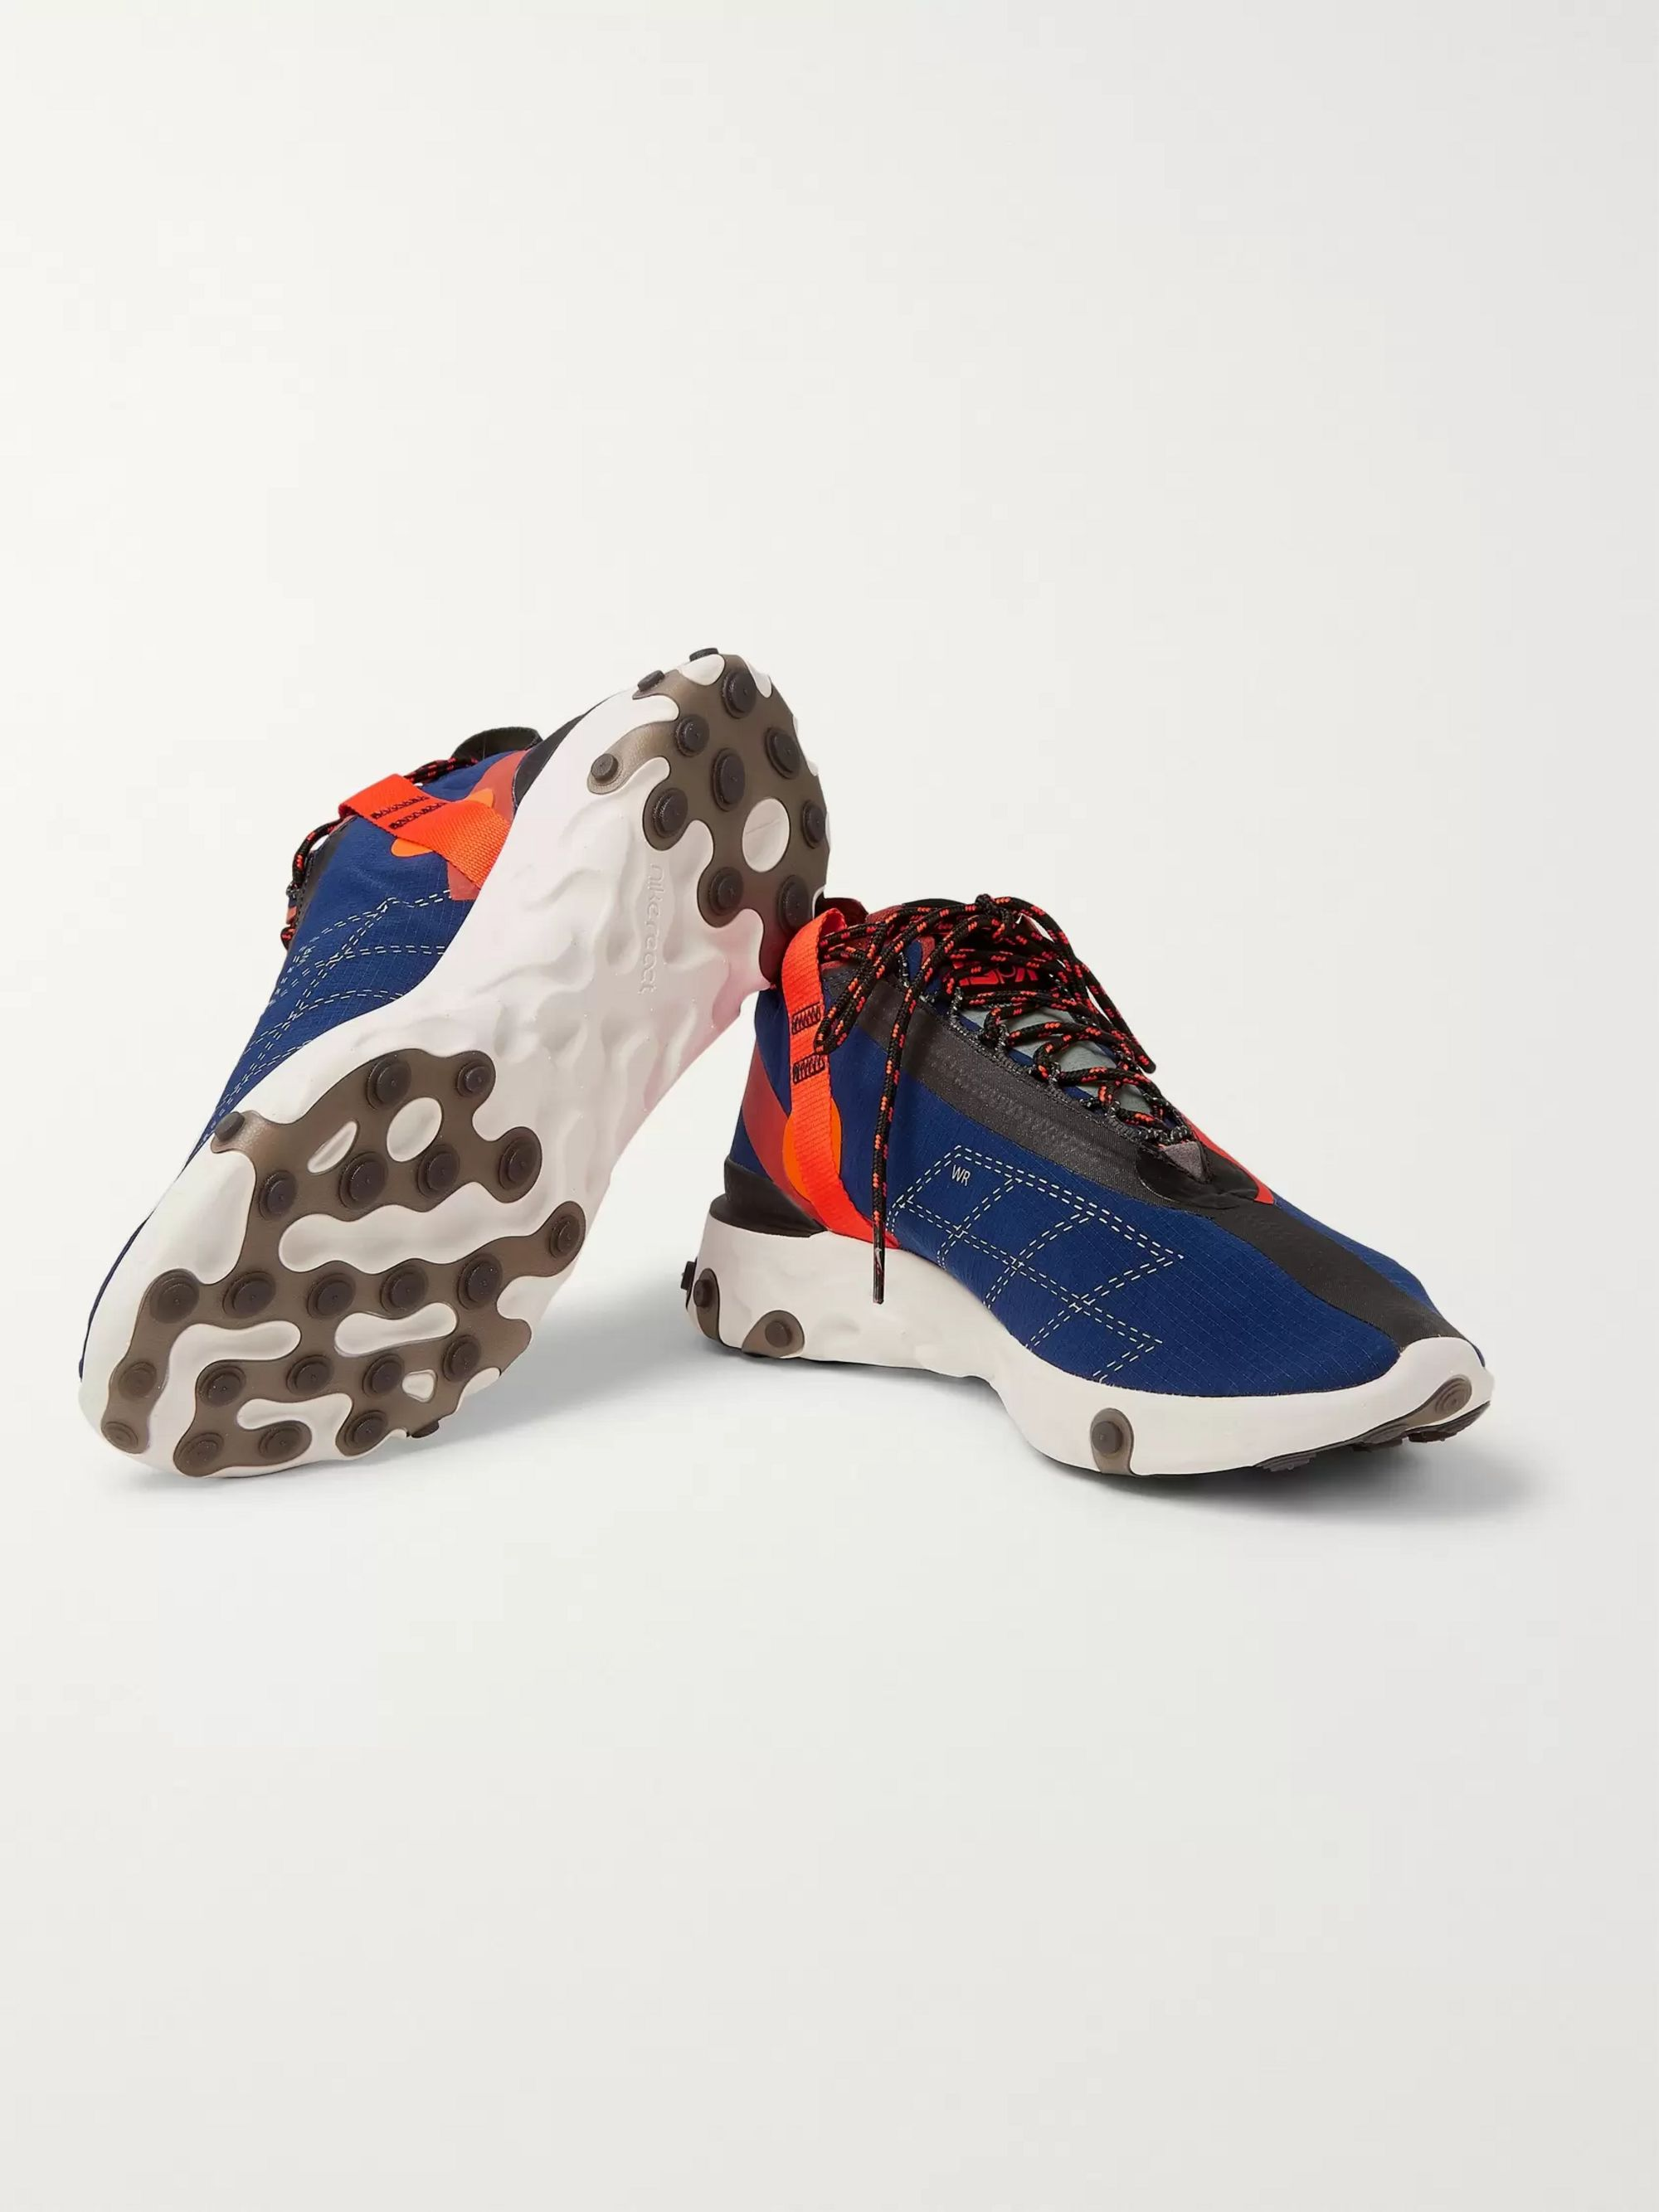 Nike React Runner Mid WR ISPA Ripstop Sneakers